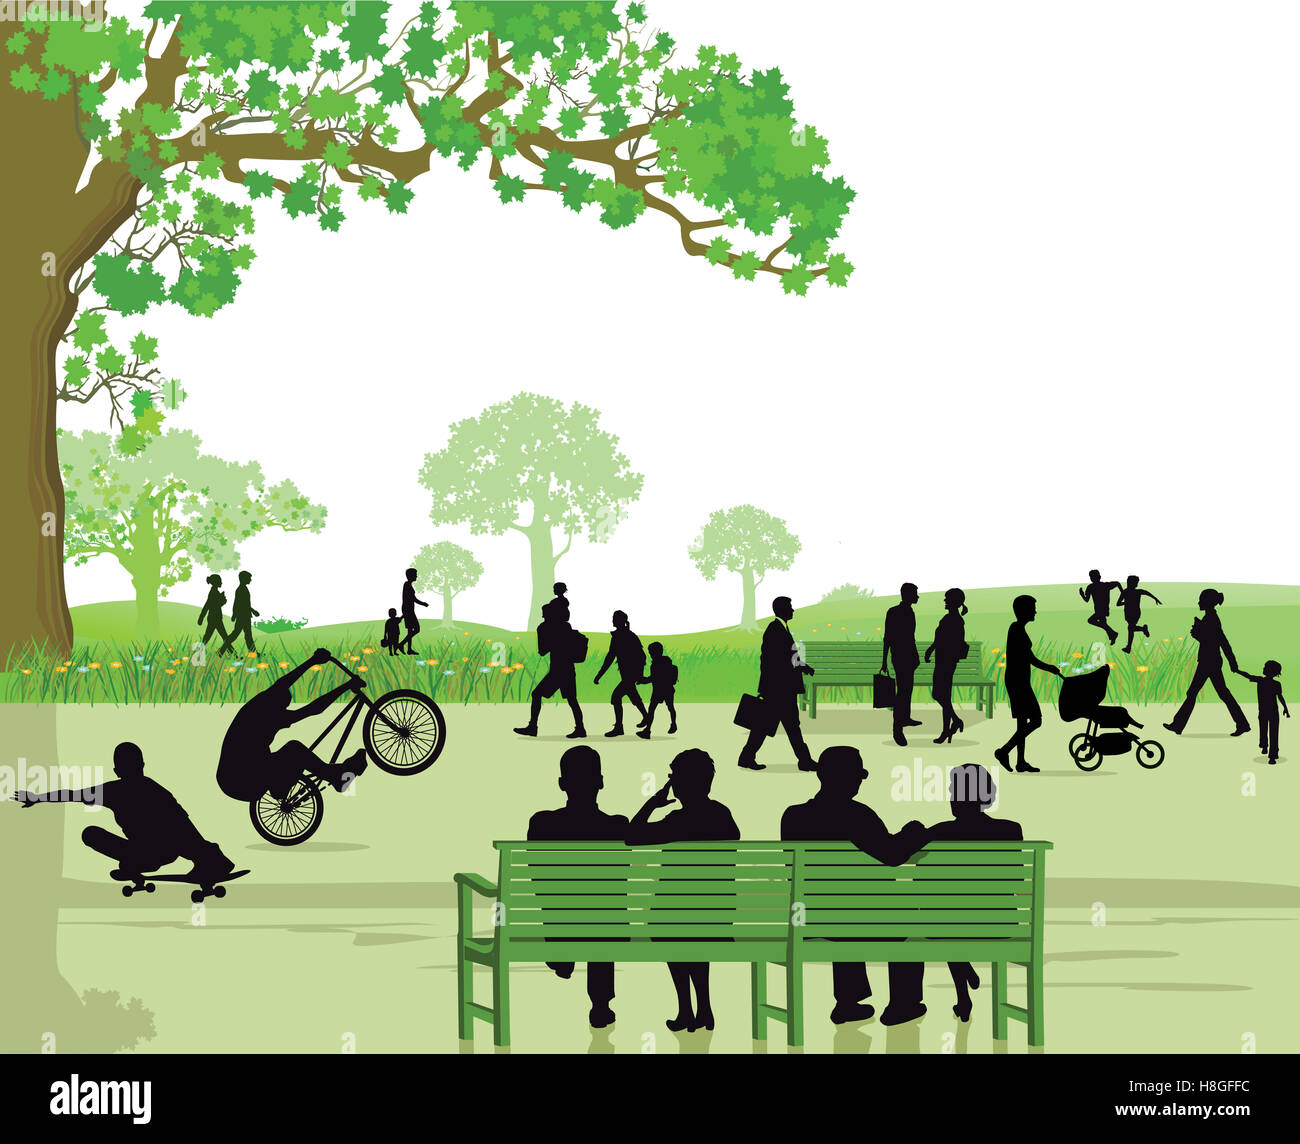 People in the park area - Stock Image